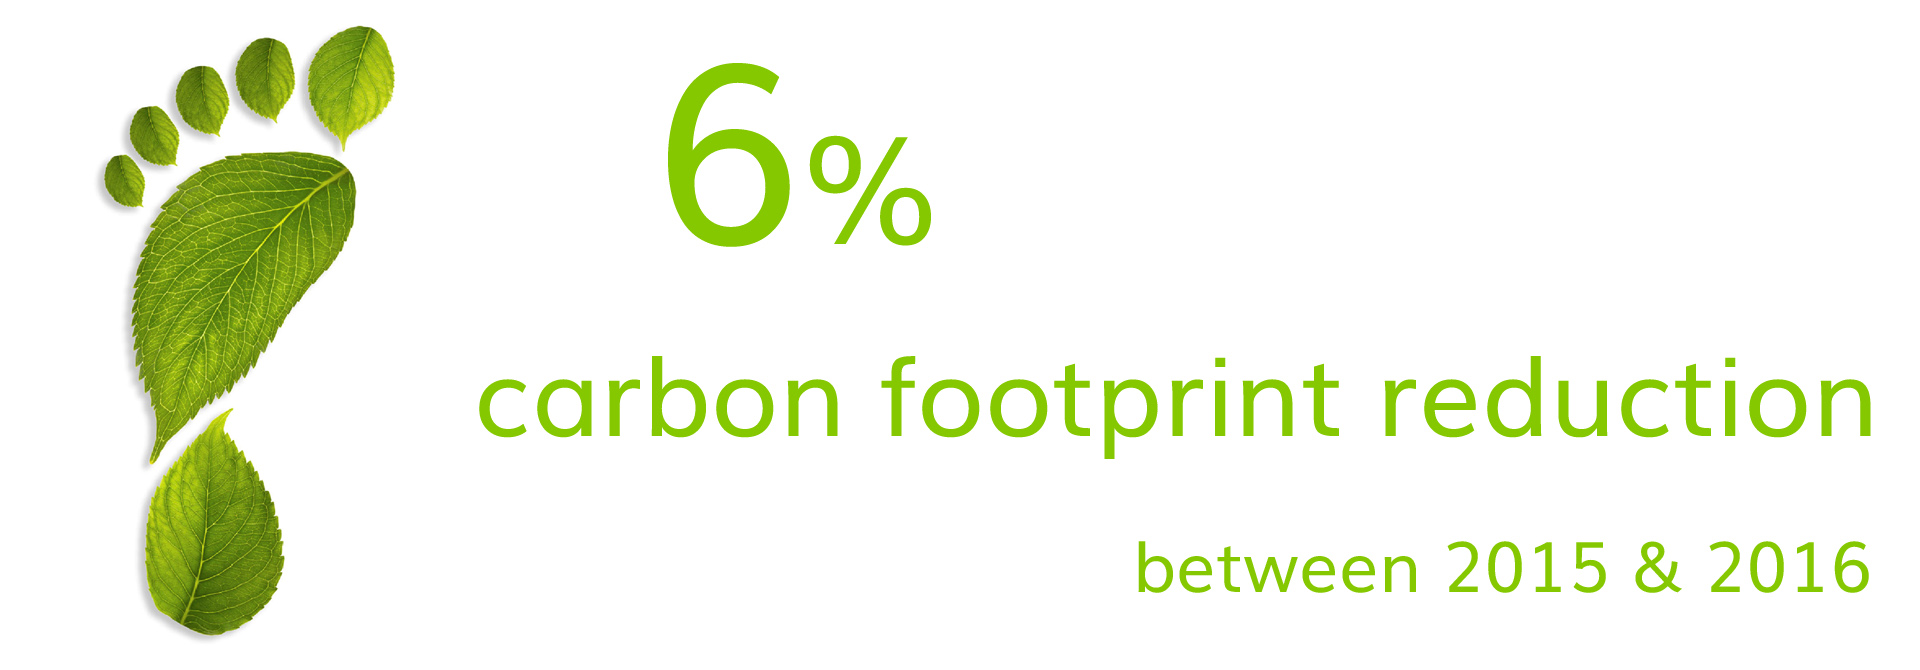 6 percent carbon footprint reduction